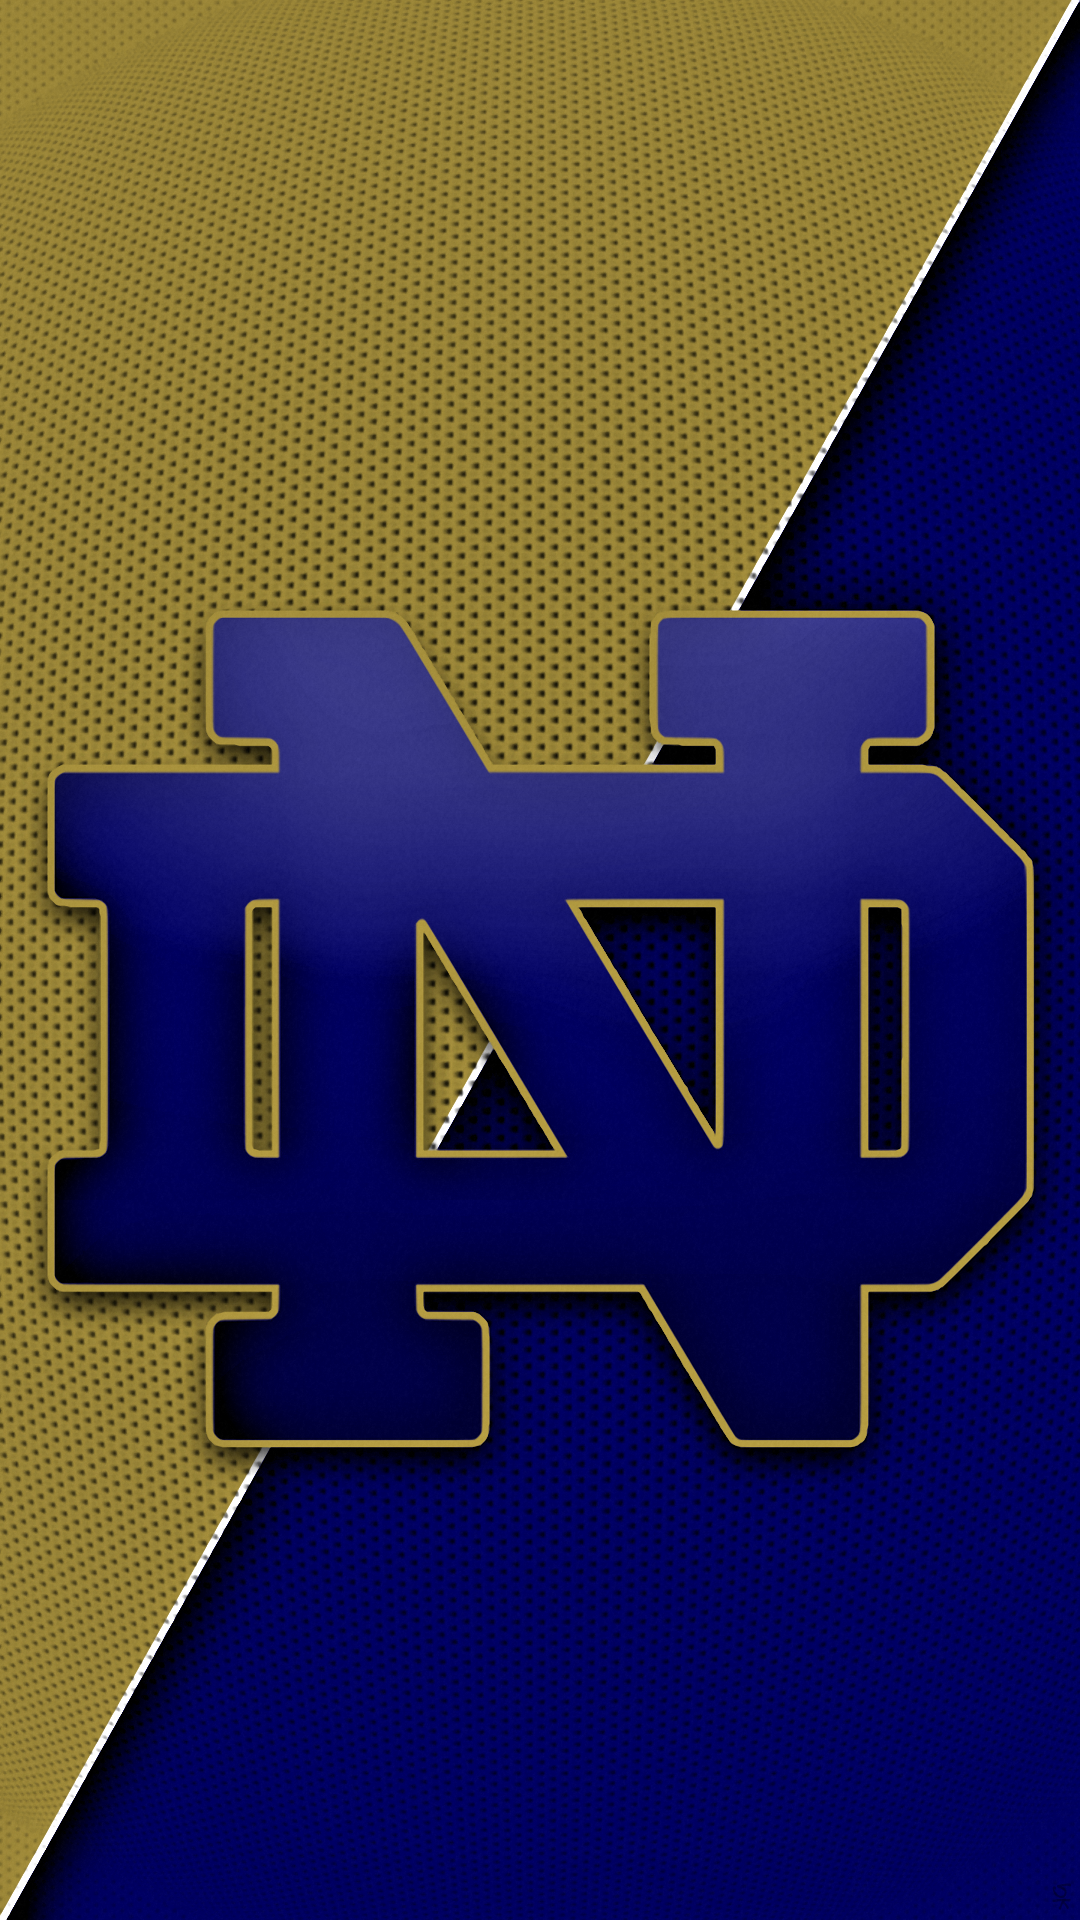 Notre Dame Wallpapers Good Backgrounds Notre Dame Hd Widescreen Fighting Irish Logo Notre Dame Wallpaper Notre Dame Fighting Irish Football